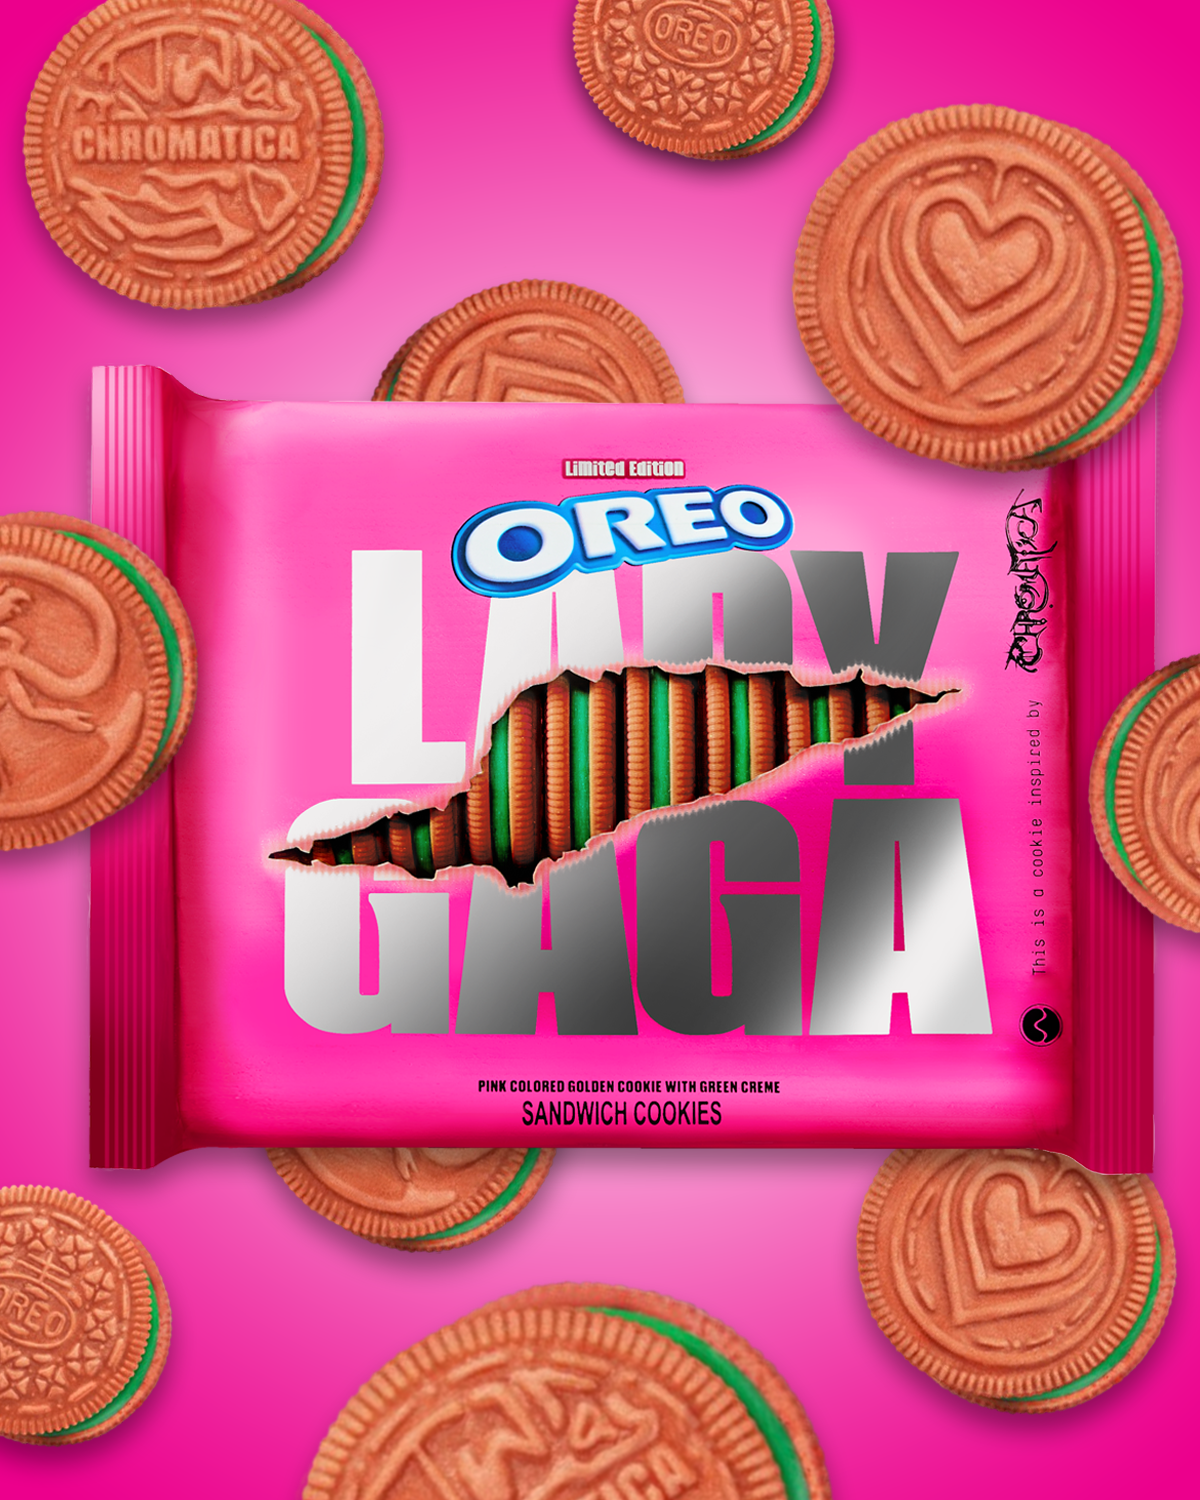 Oreo is launching Lady Gaga themed cookies. Here s when you can get them